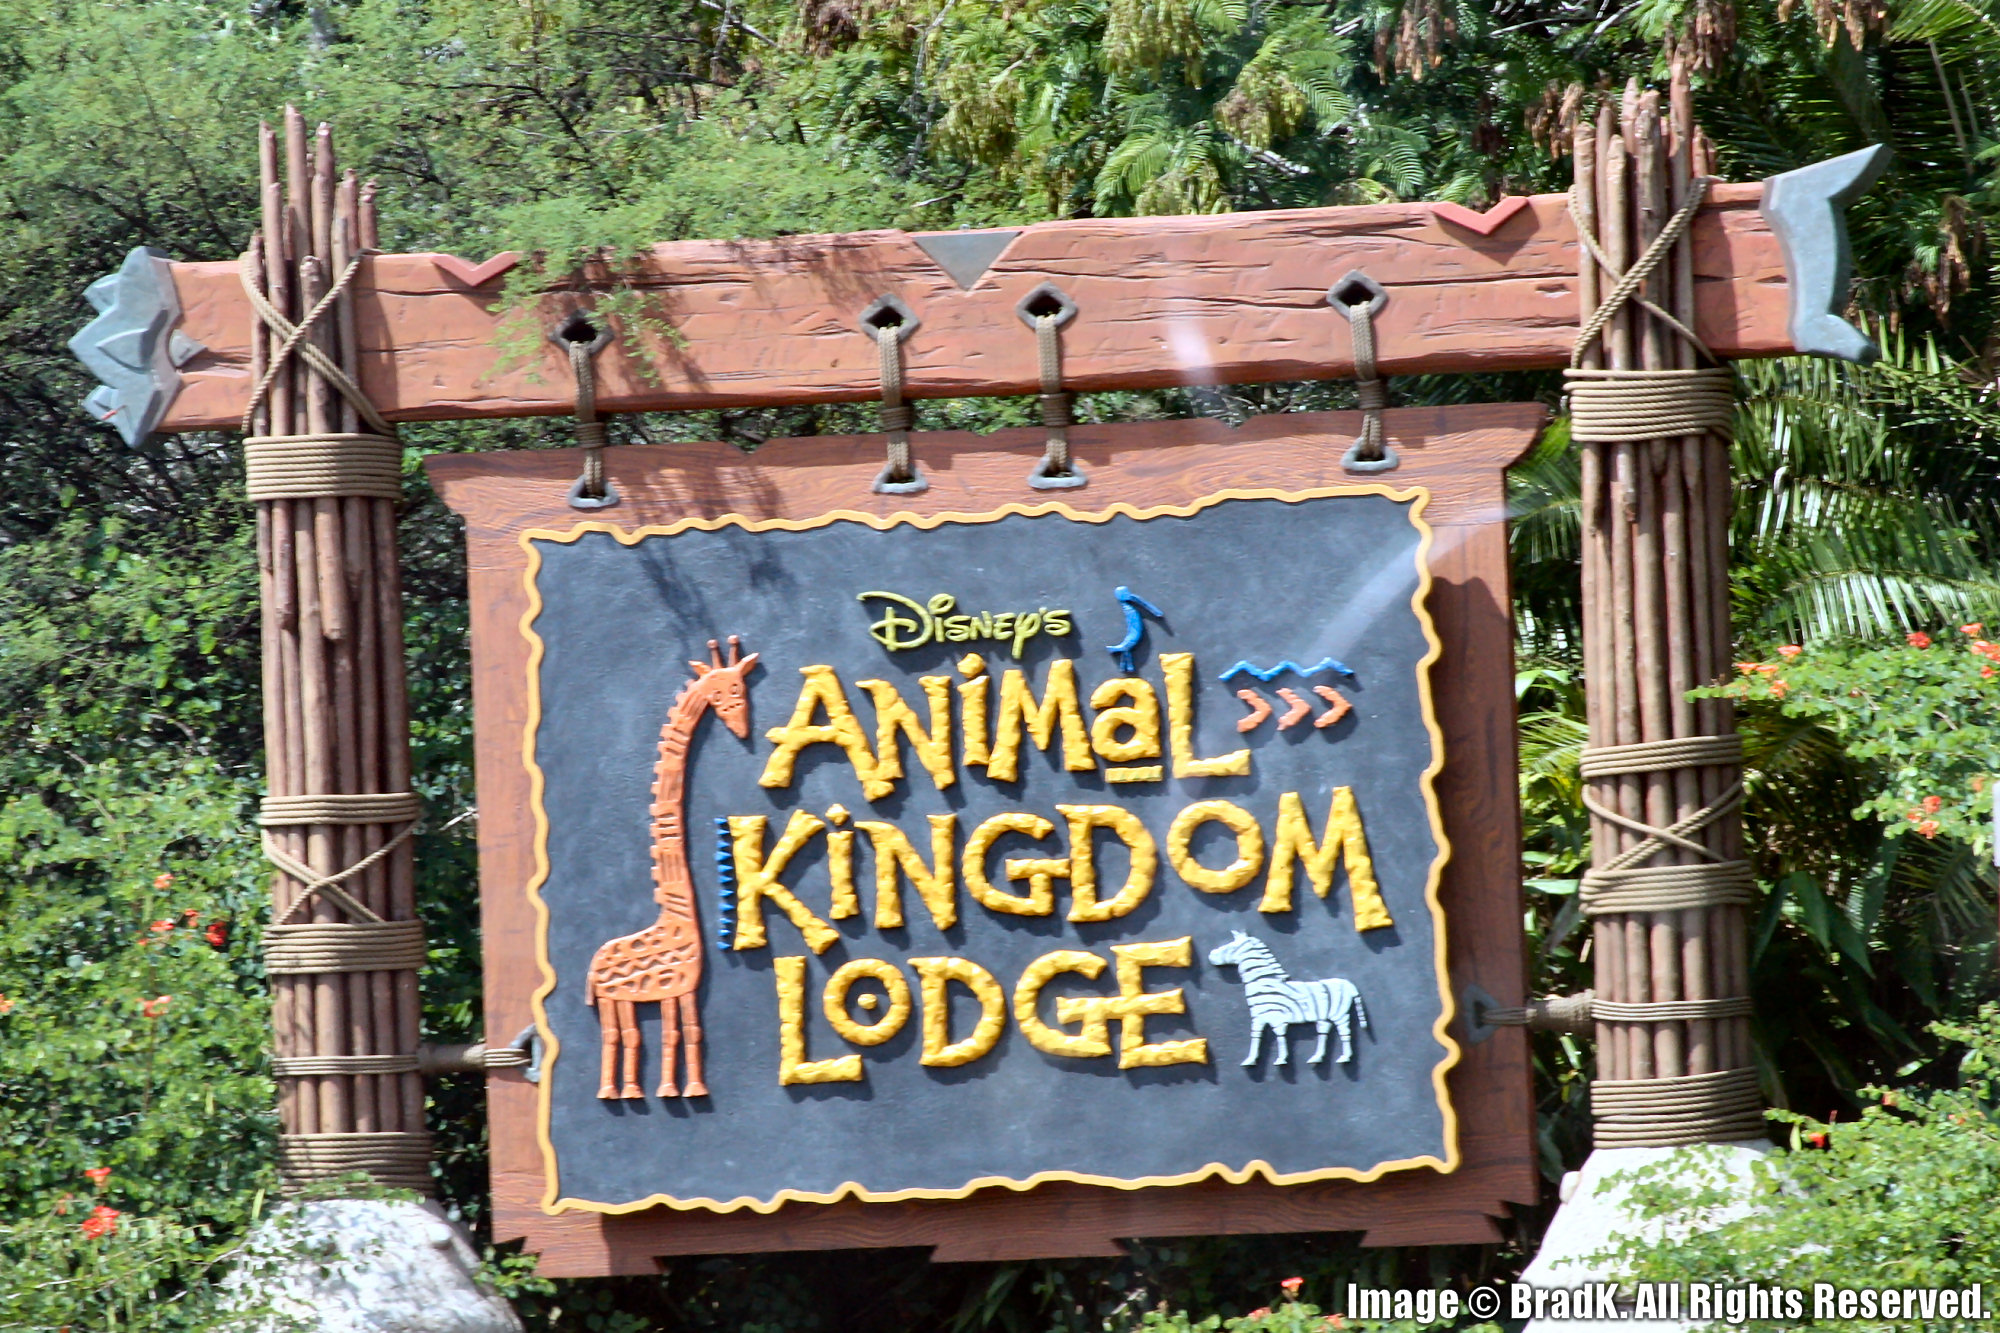 A wild review of Disneys Animal Kingdom Lodge Resort Hotel |PassPorter.com